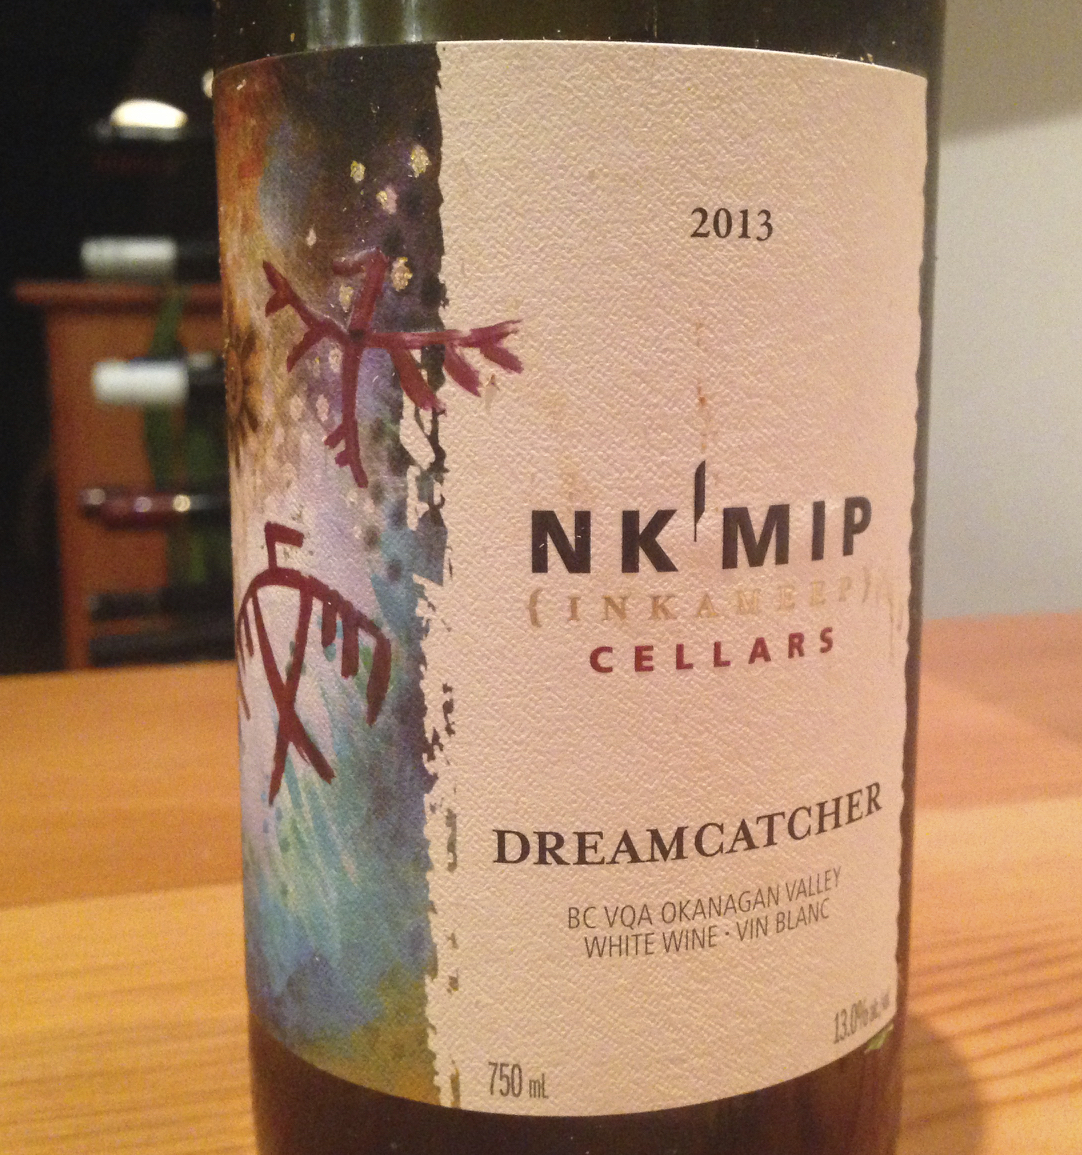 nk'mipDreamcatcher2013